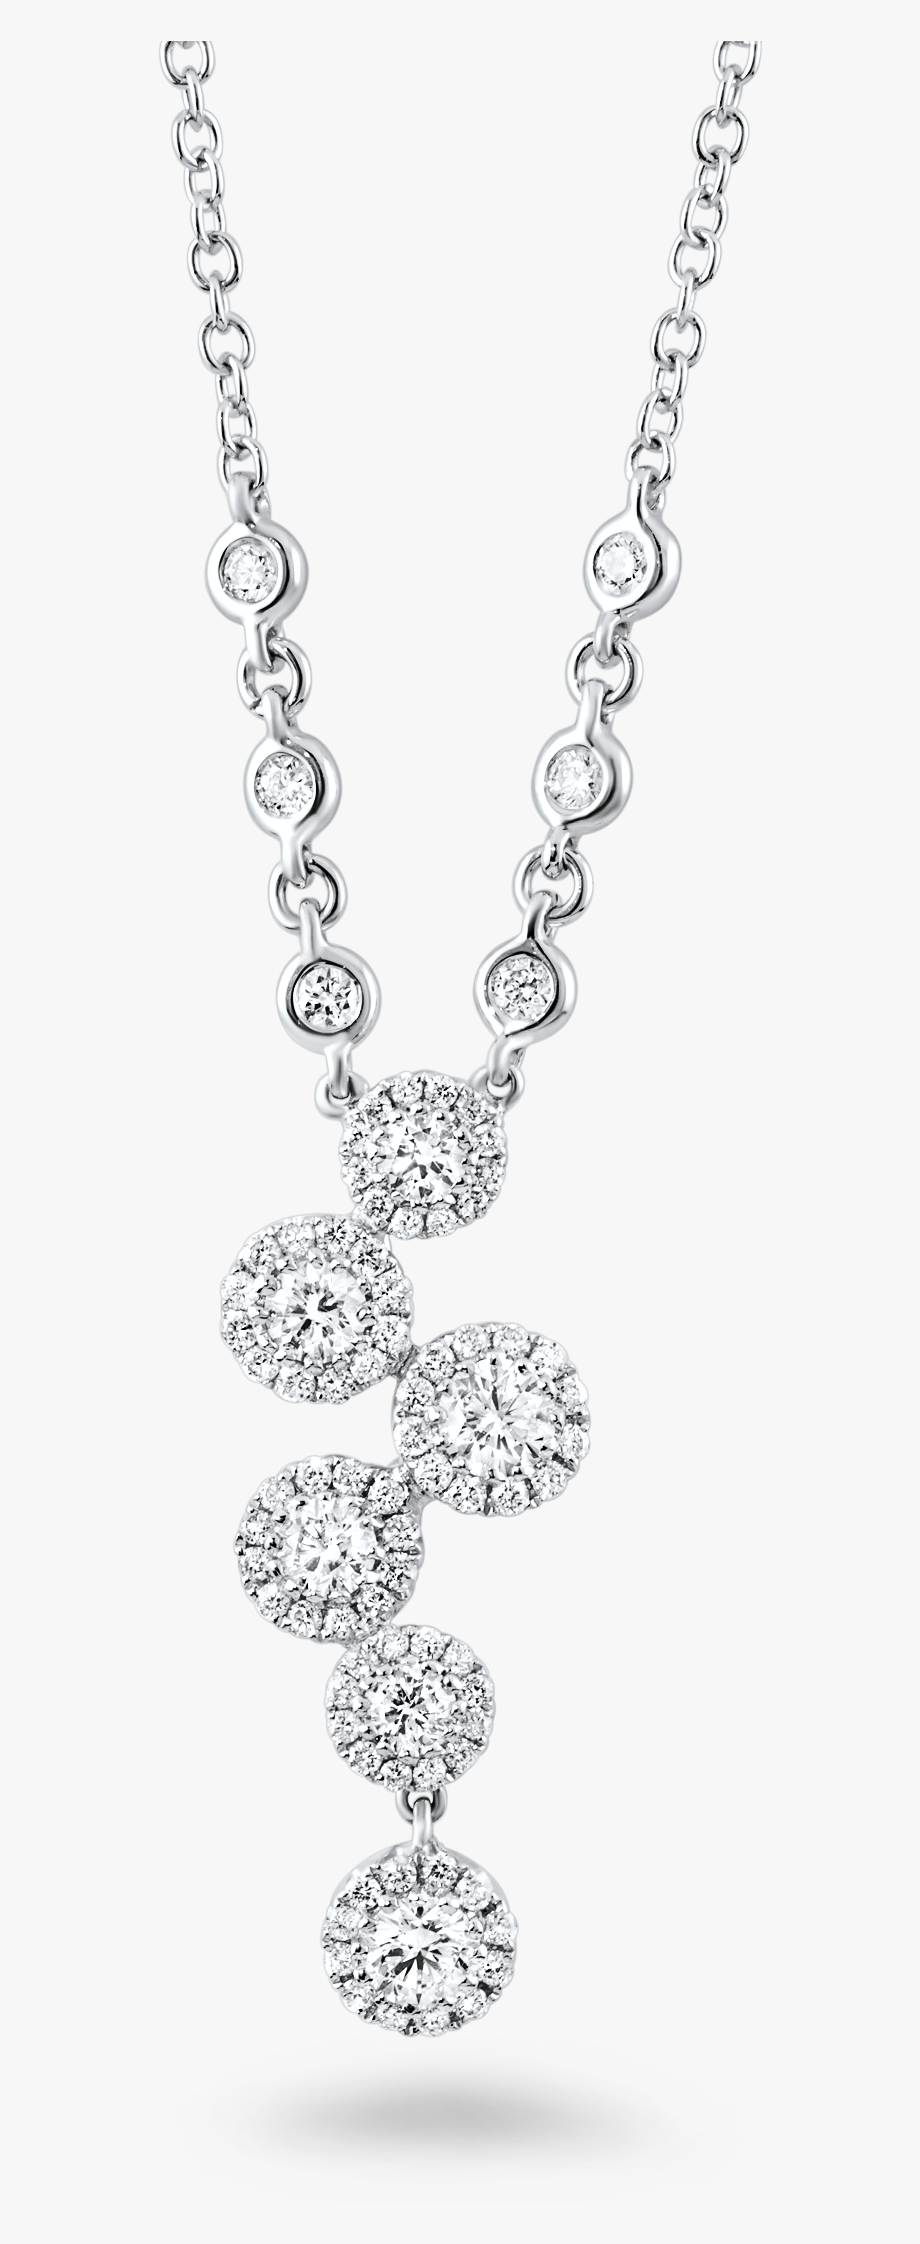 Necklace png cliparts cartoons. Chain clipart diamond